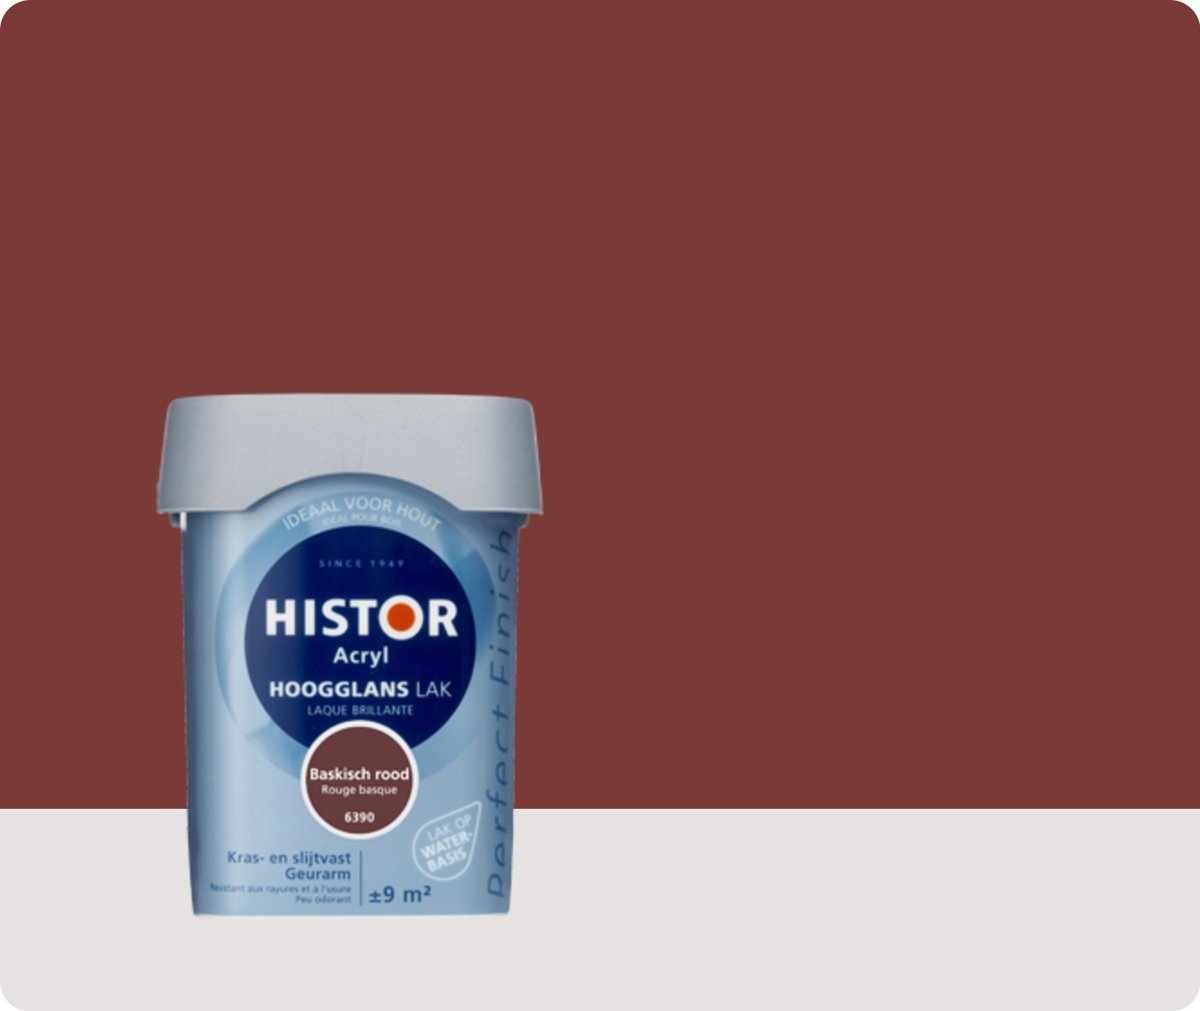 Perfect Base Trapverf Histor Perfect Finish Lak Acryl Hoogglans 75 Liter Baskischrood